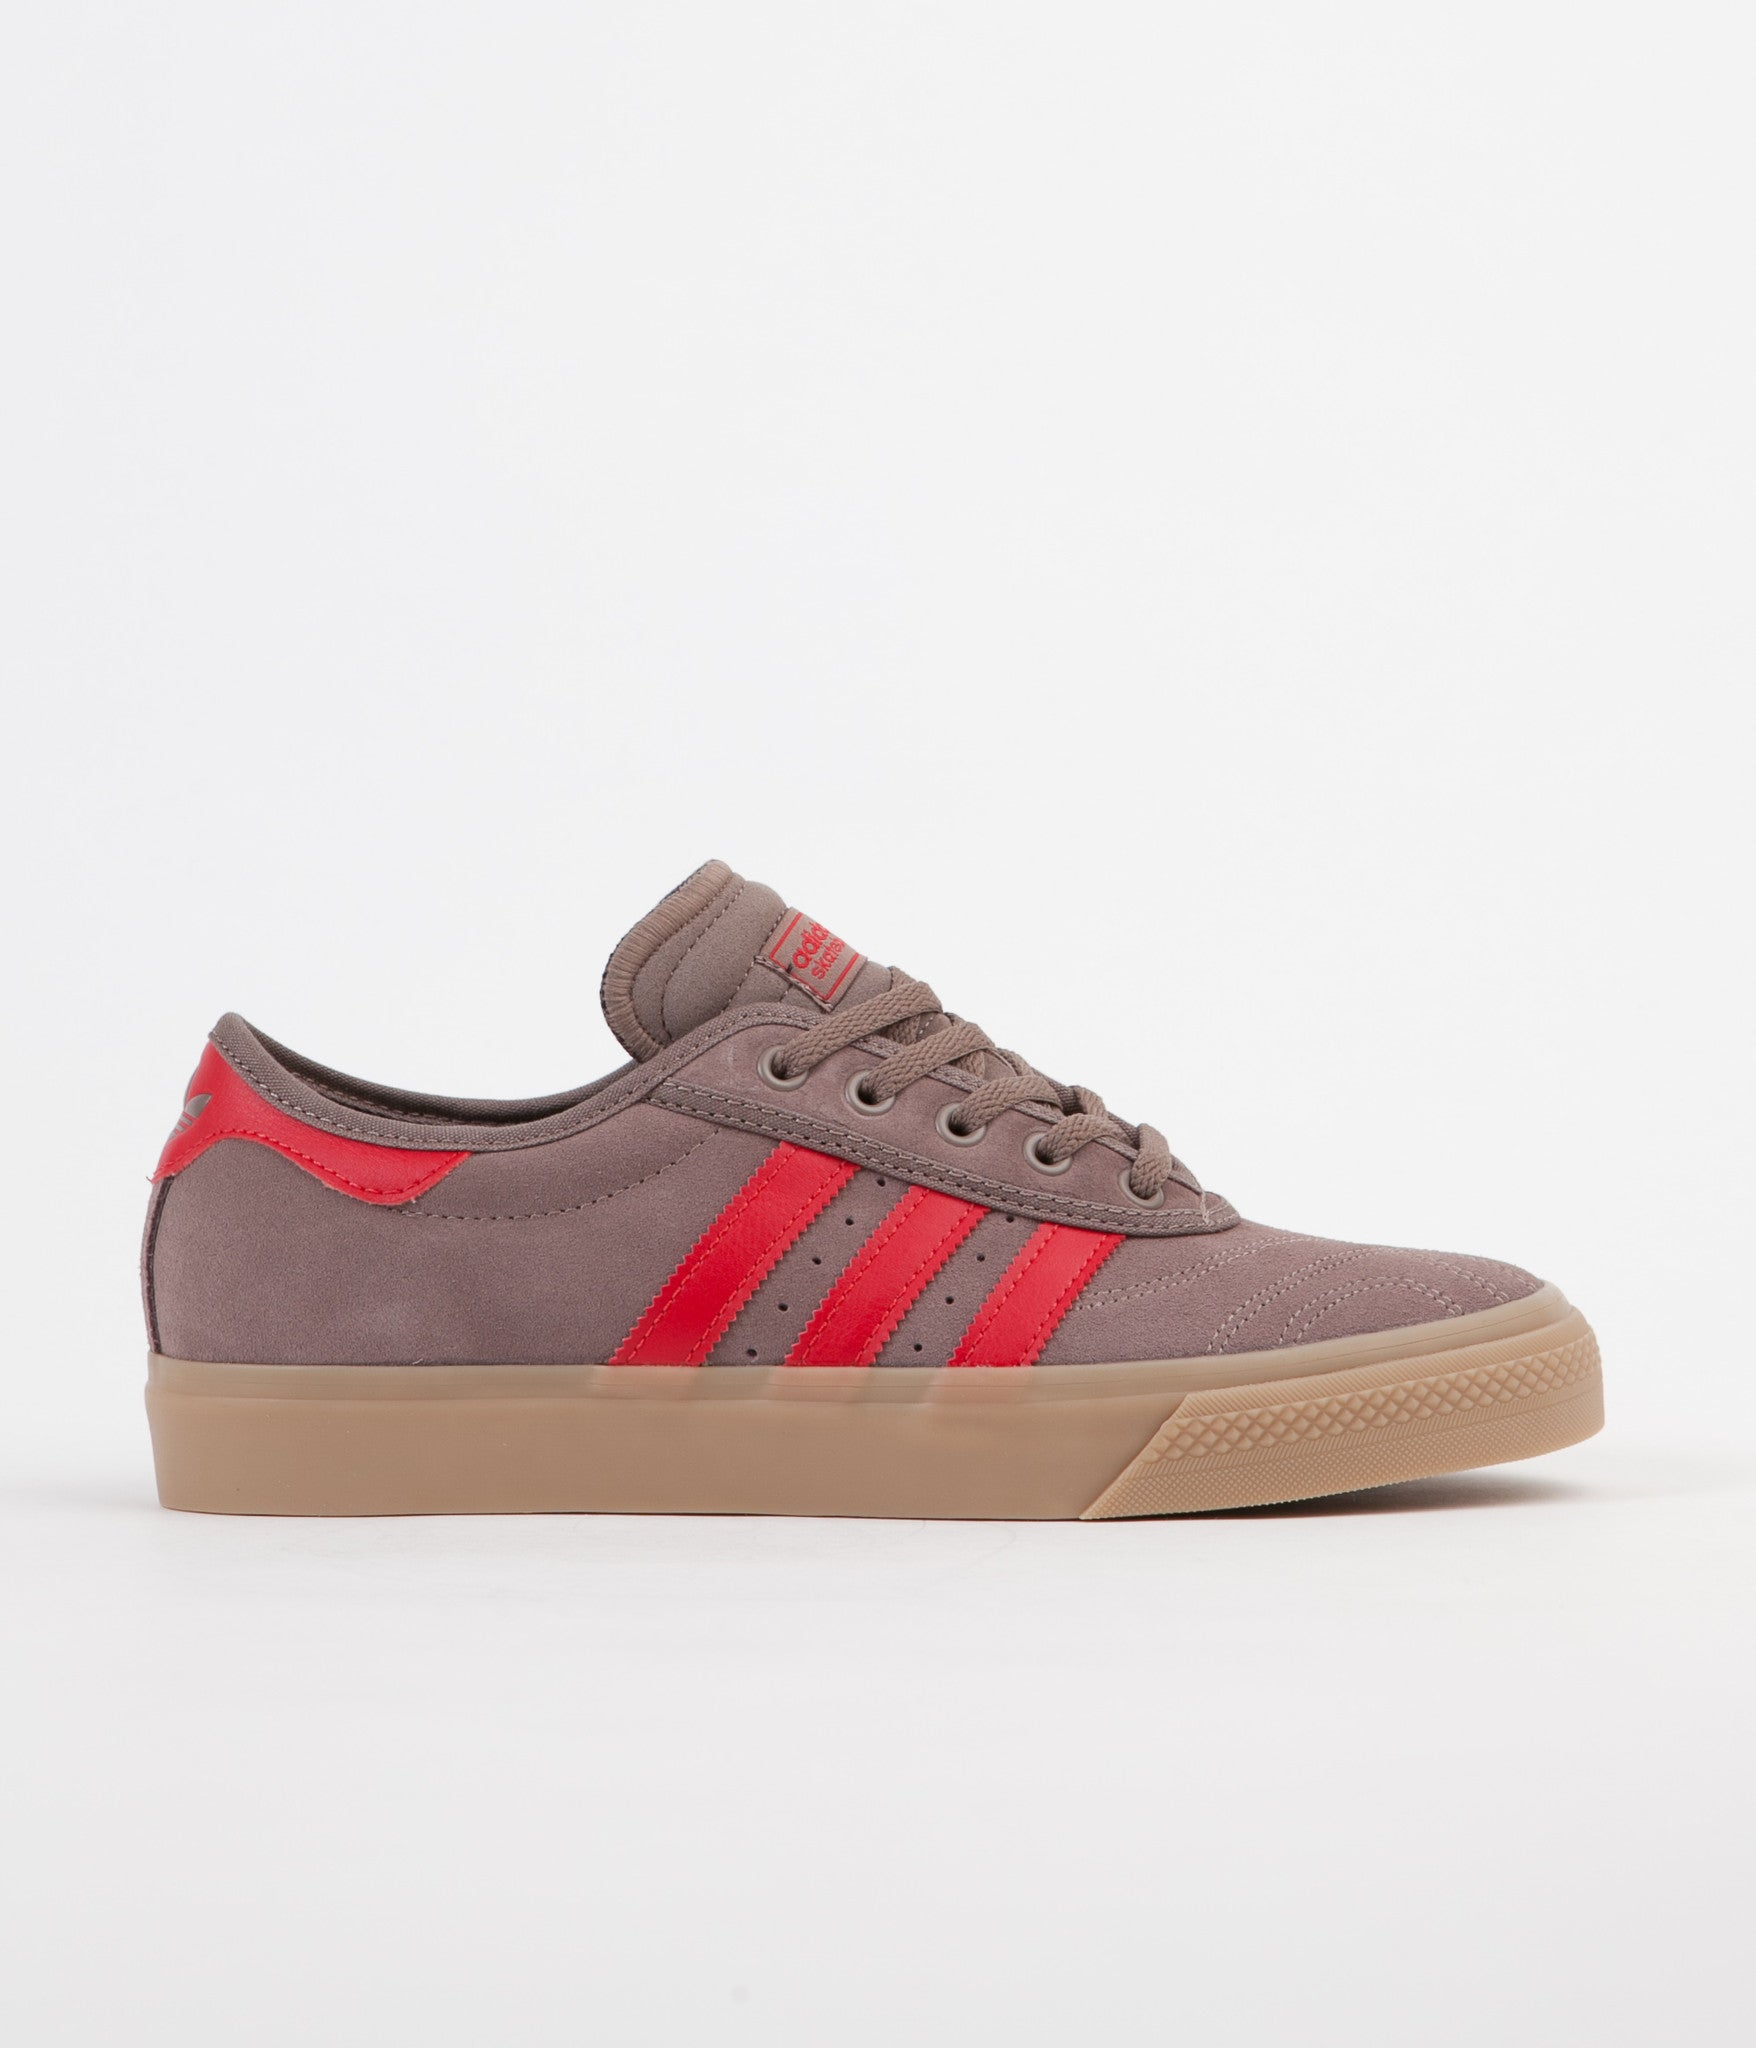 ... Adidas Adi-Ease Premiere Adv Shoes - Trace Brown / Scarlet / Gum ...